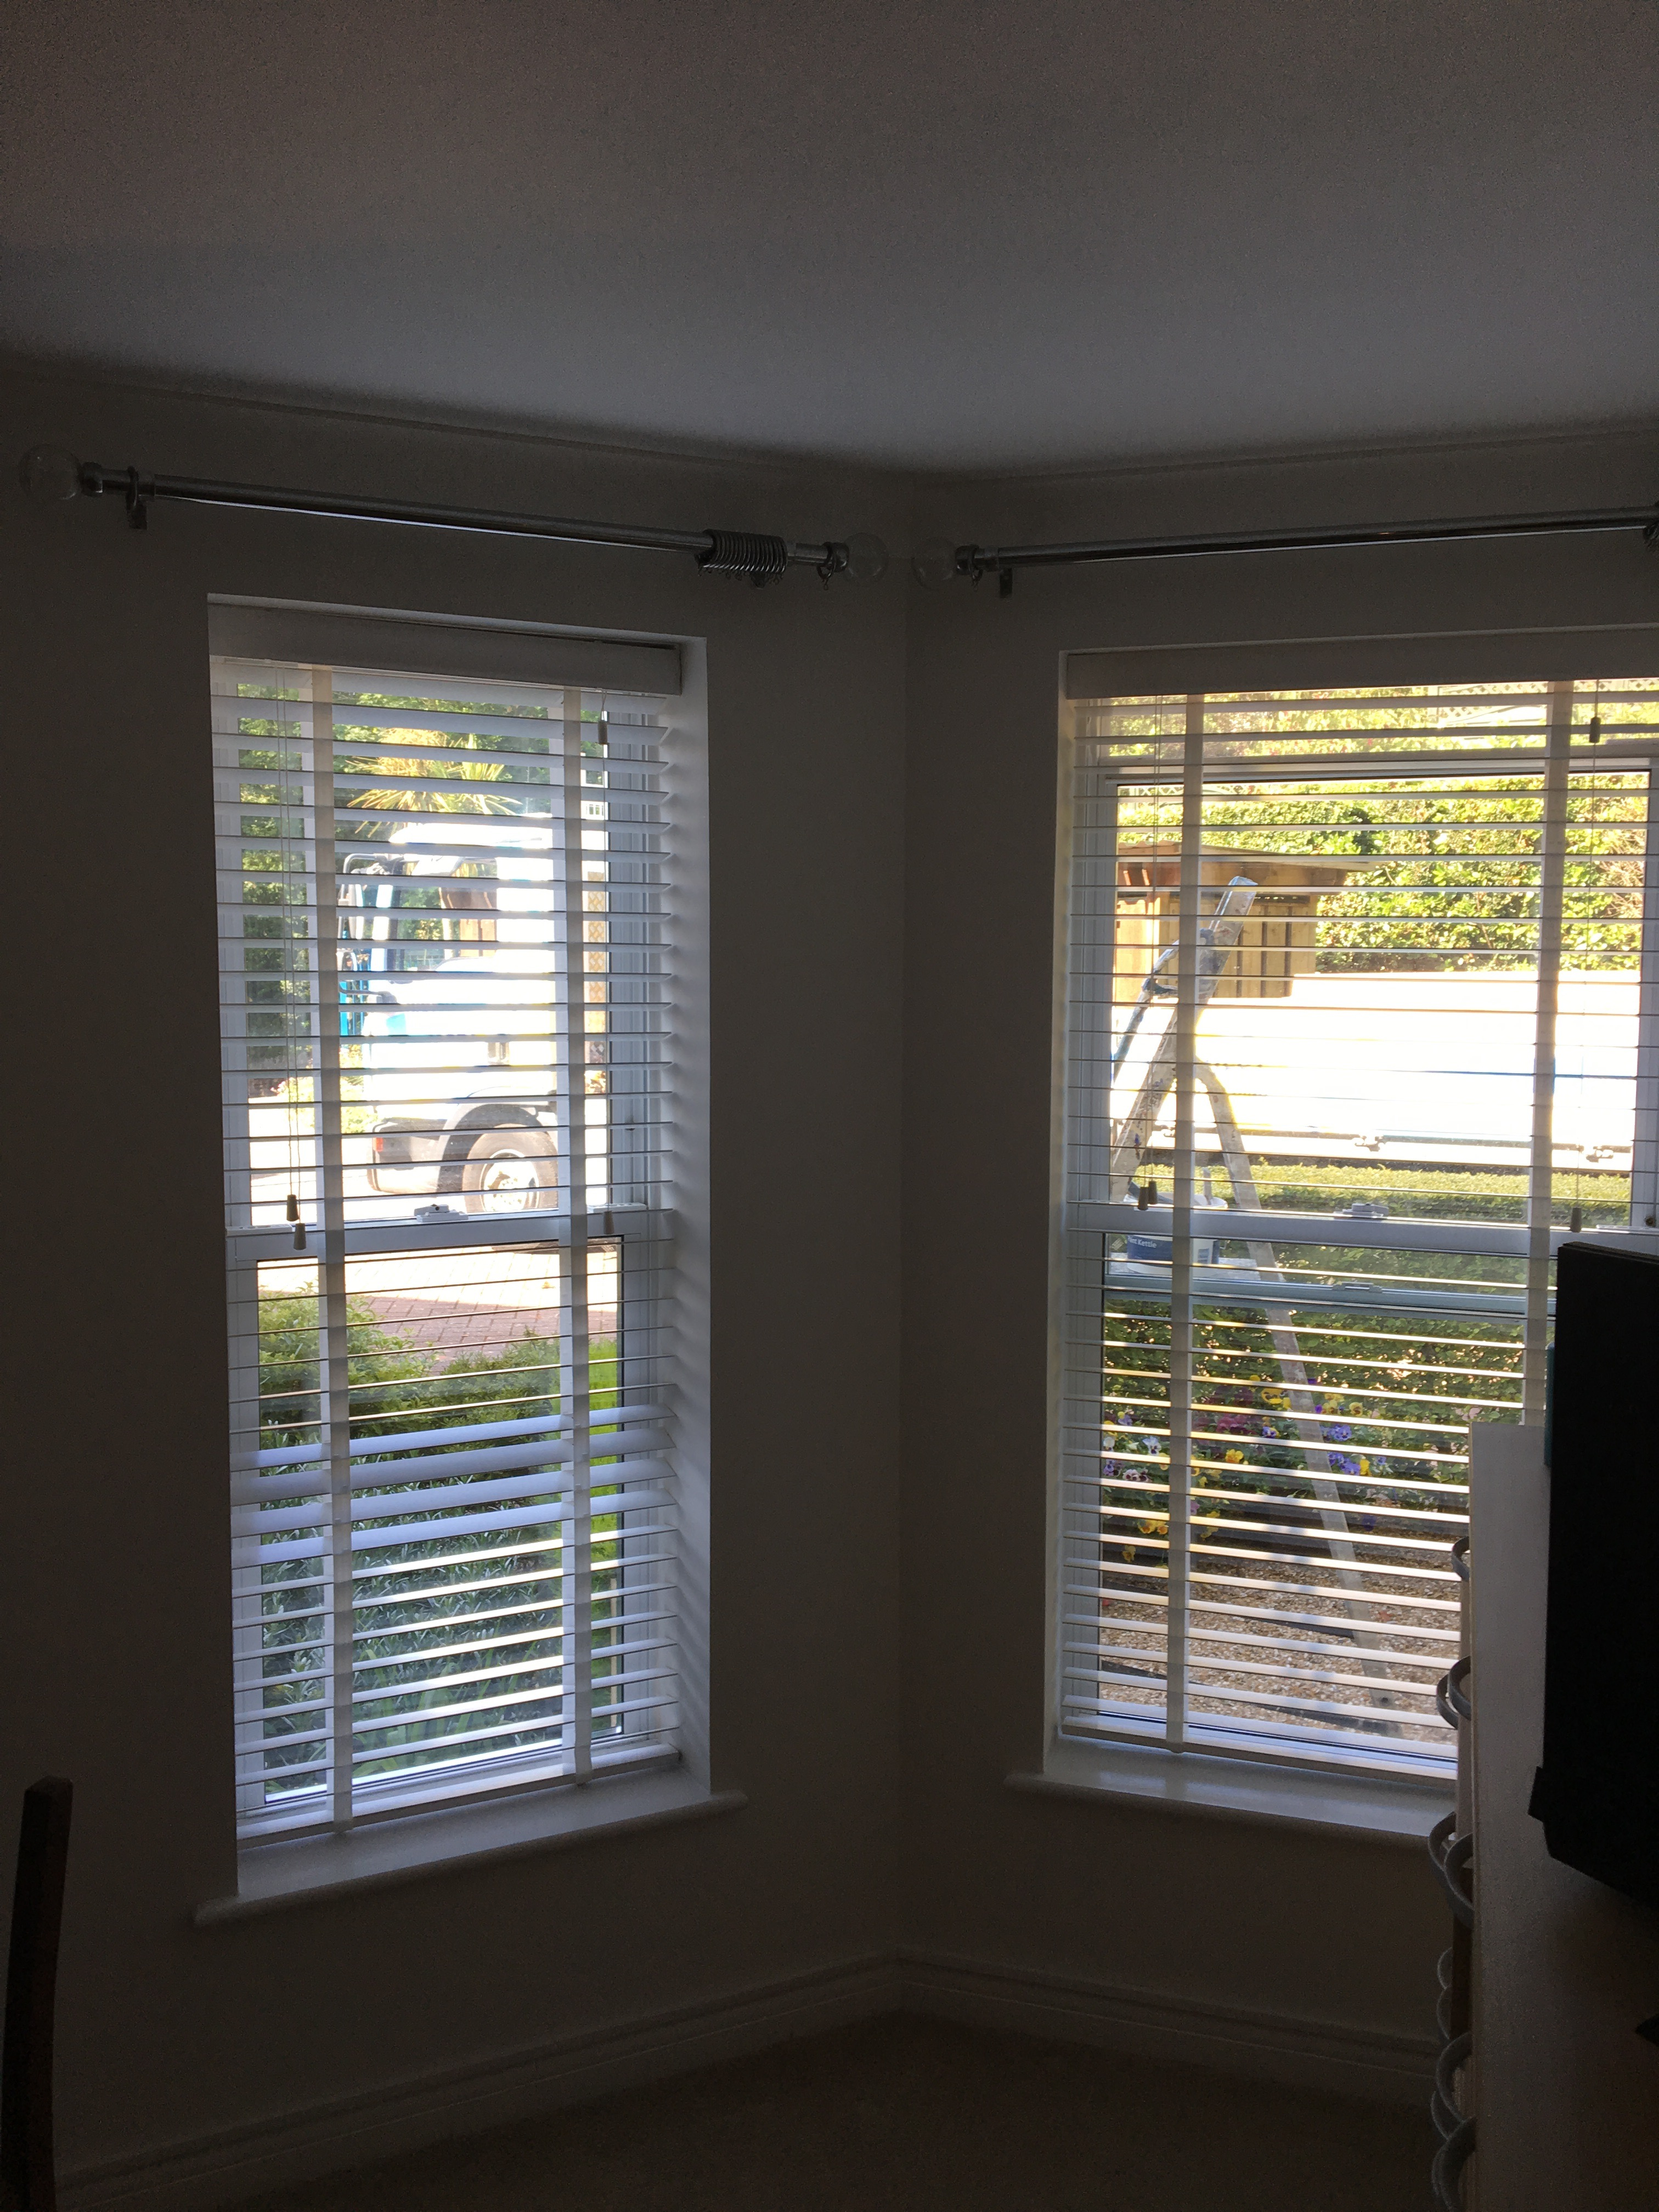 Alternative for shutters? Featured Image